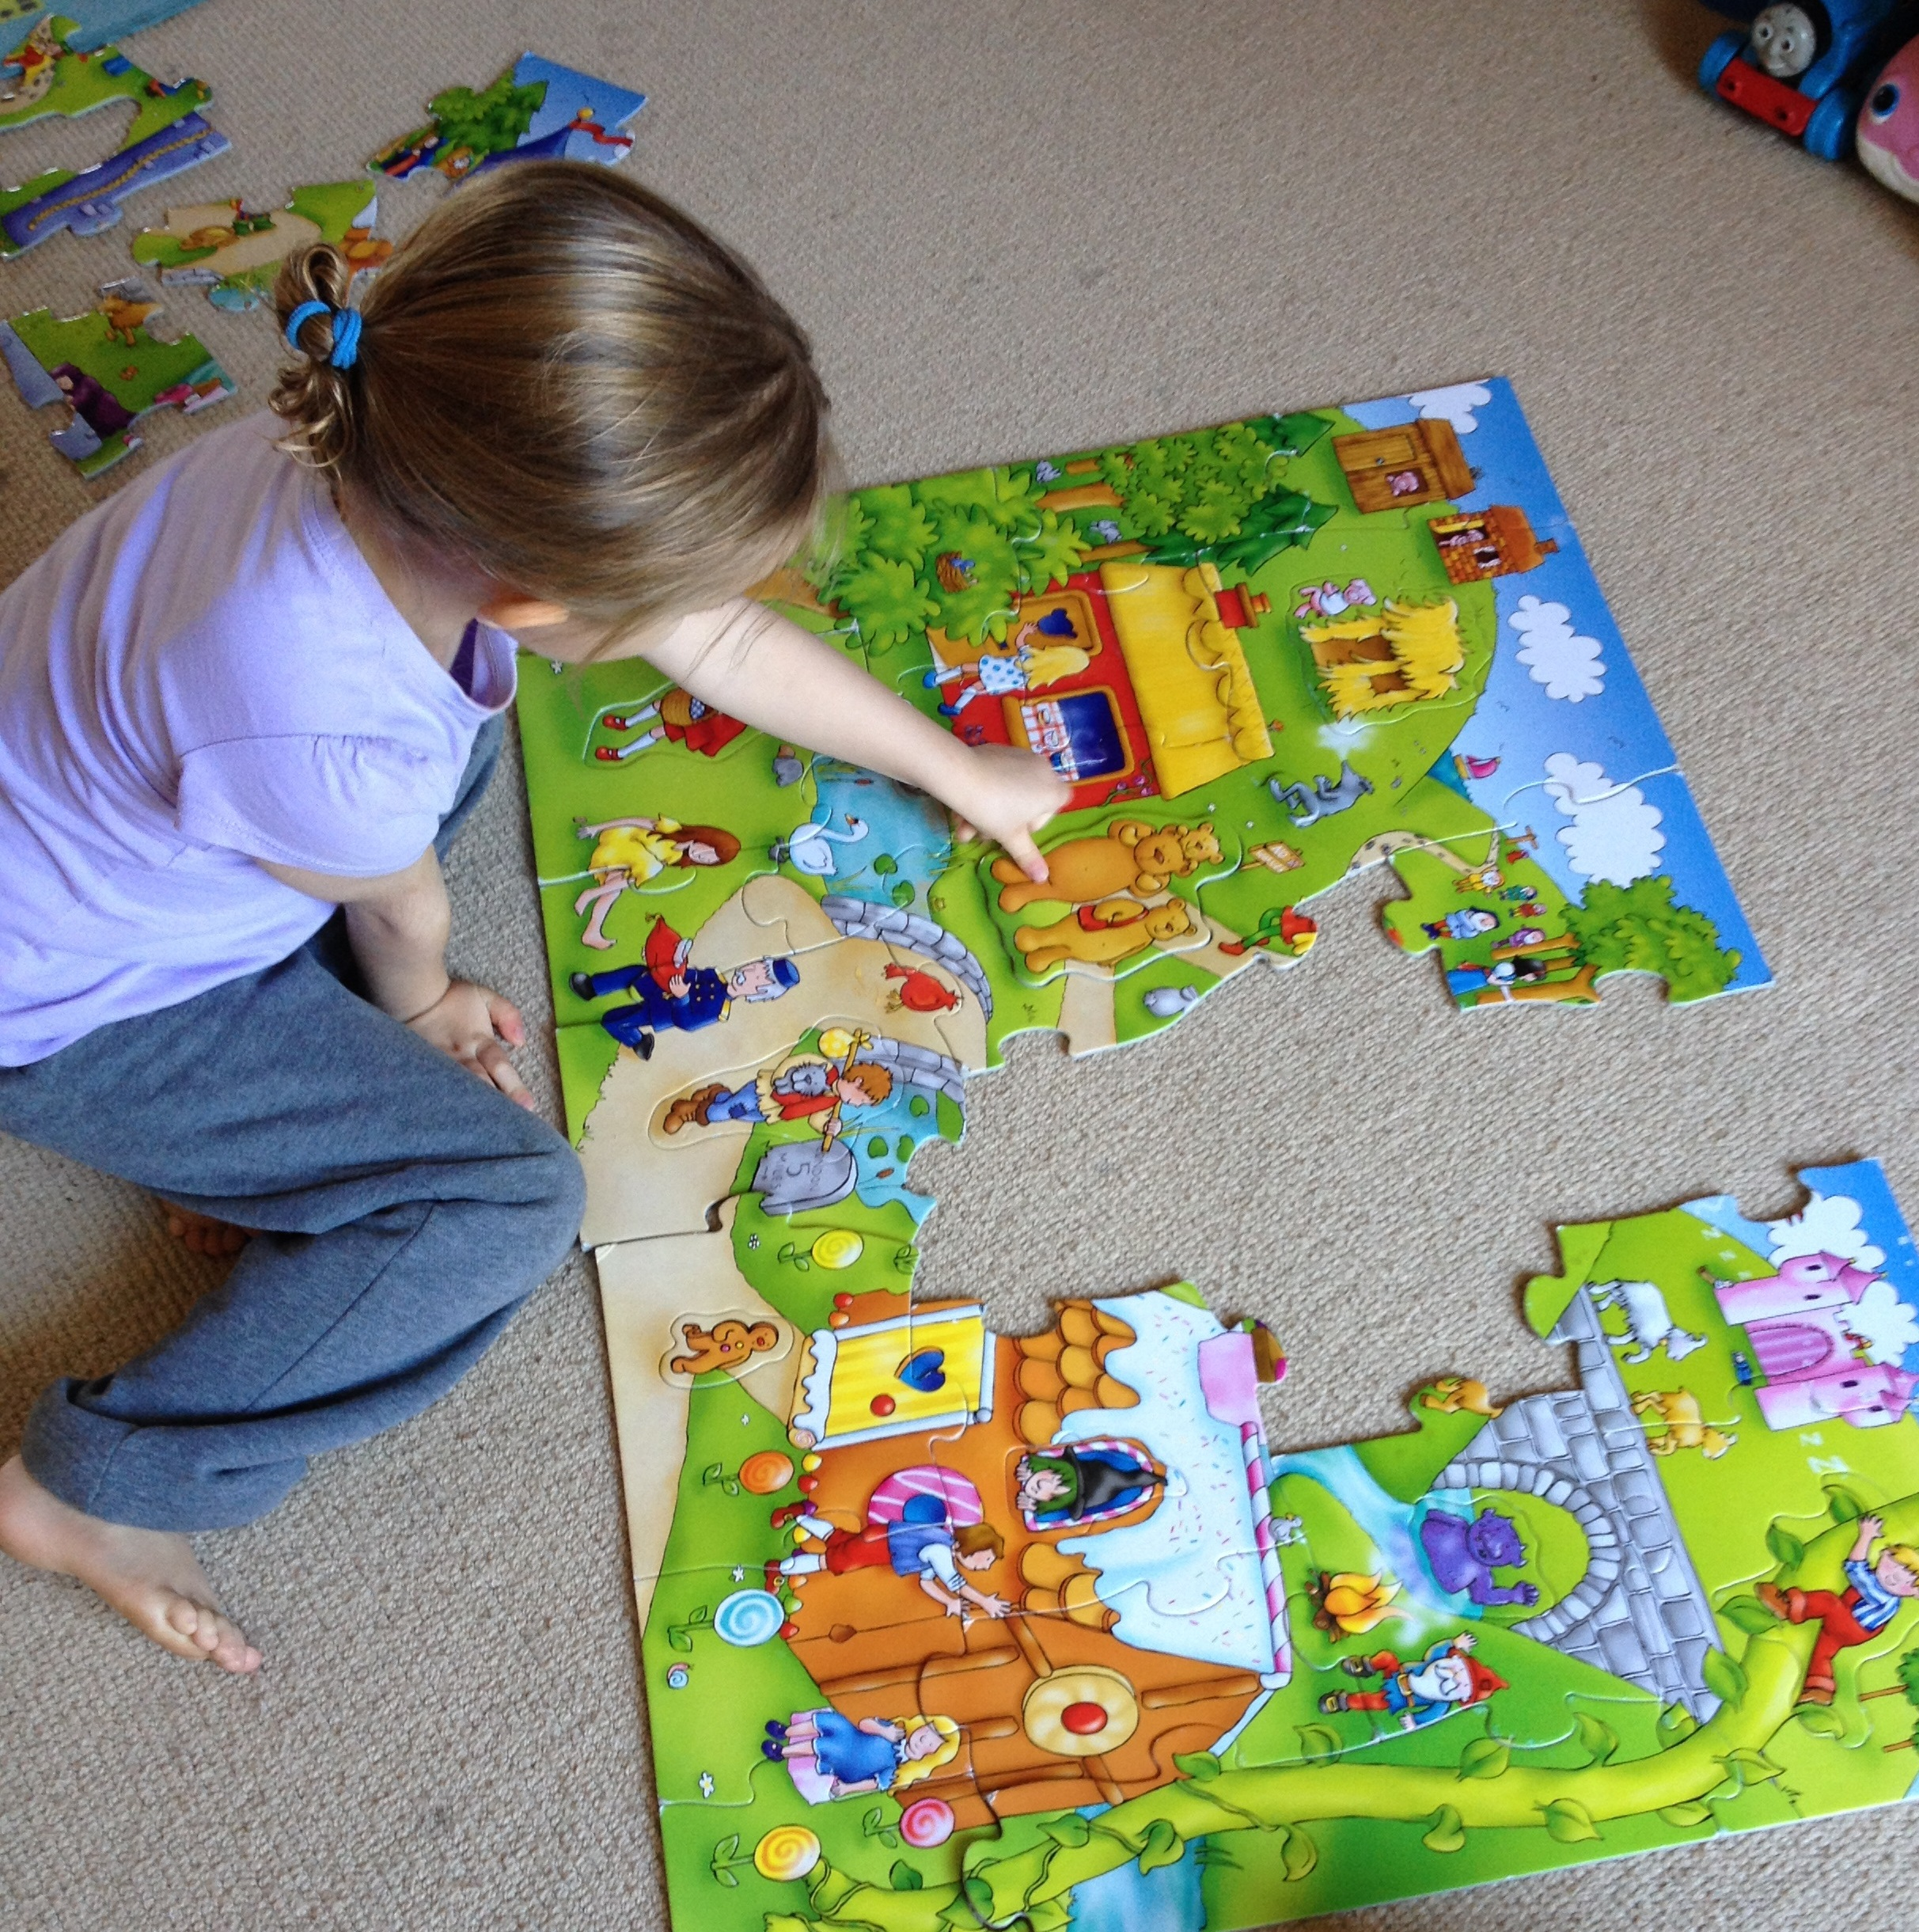 How to choose the right jigsaw puzzle